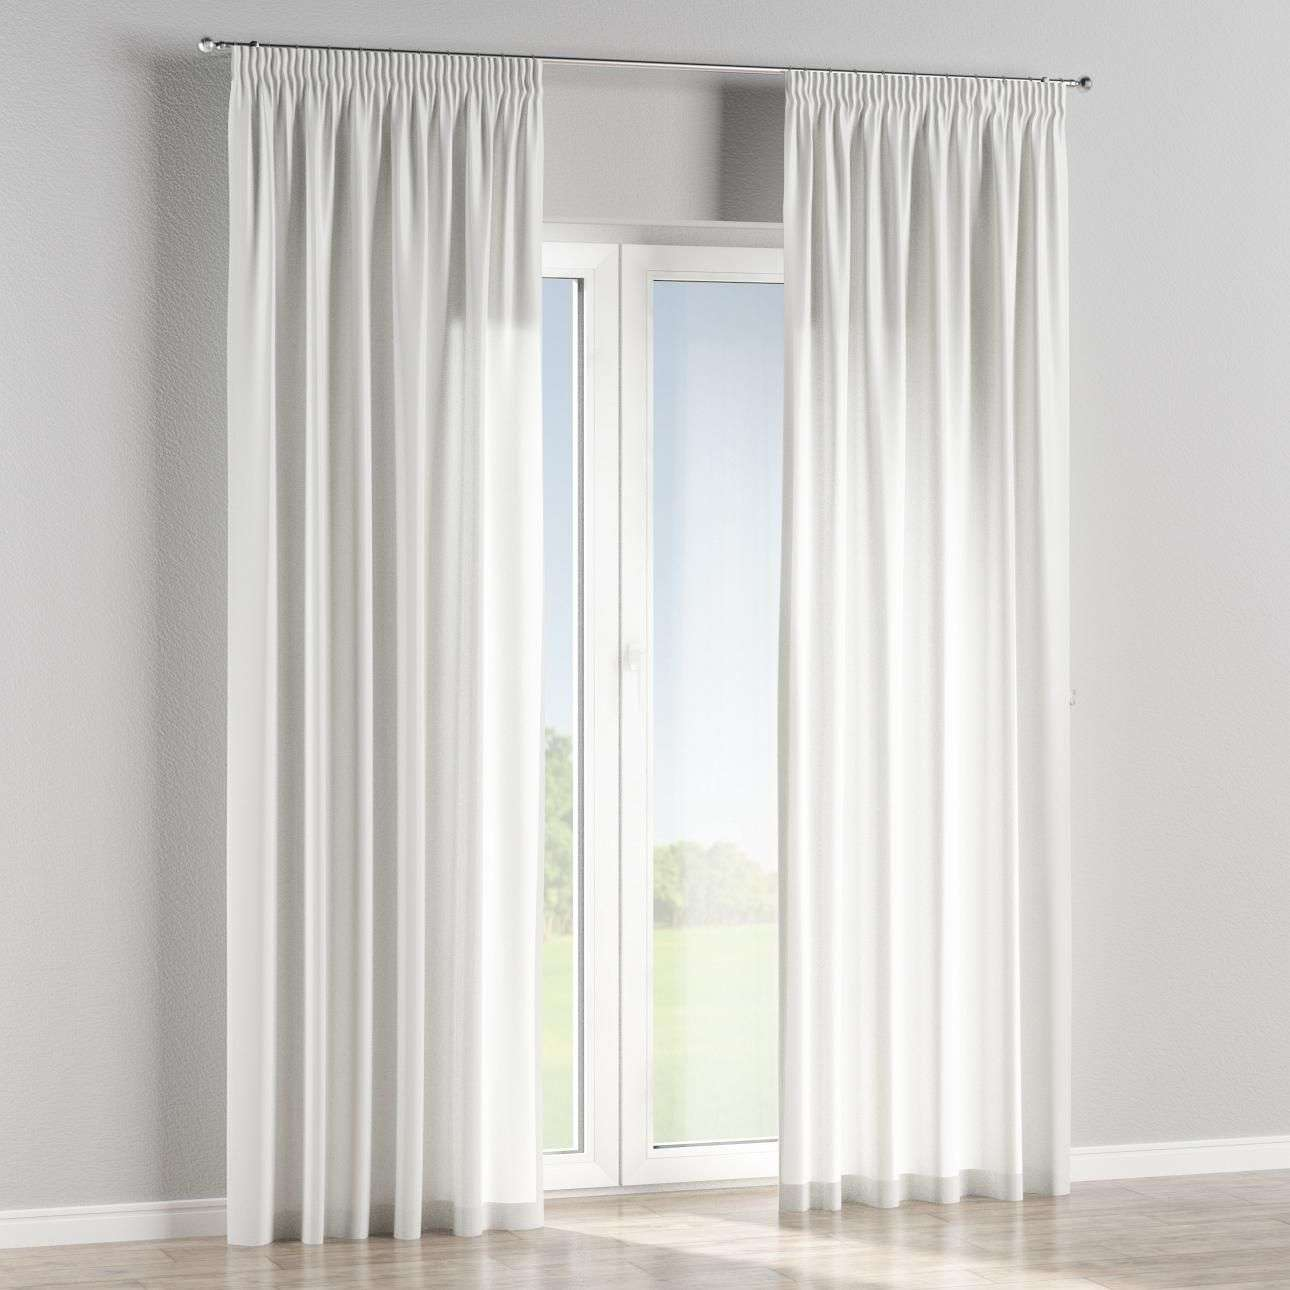 Pencil pleat curtains in collection Londres, fabric: 122-03